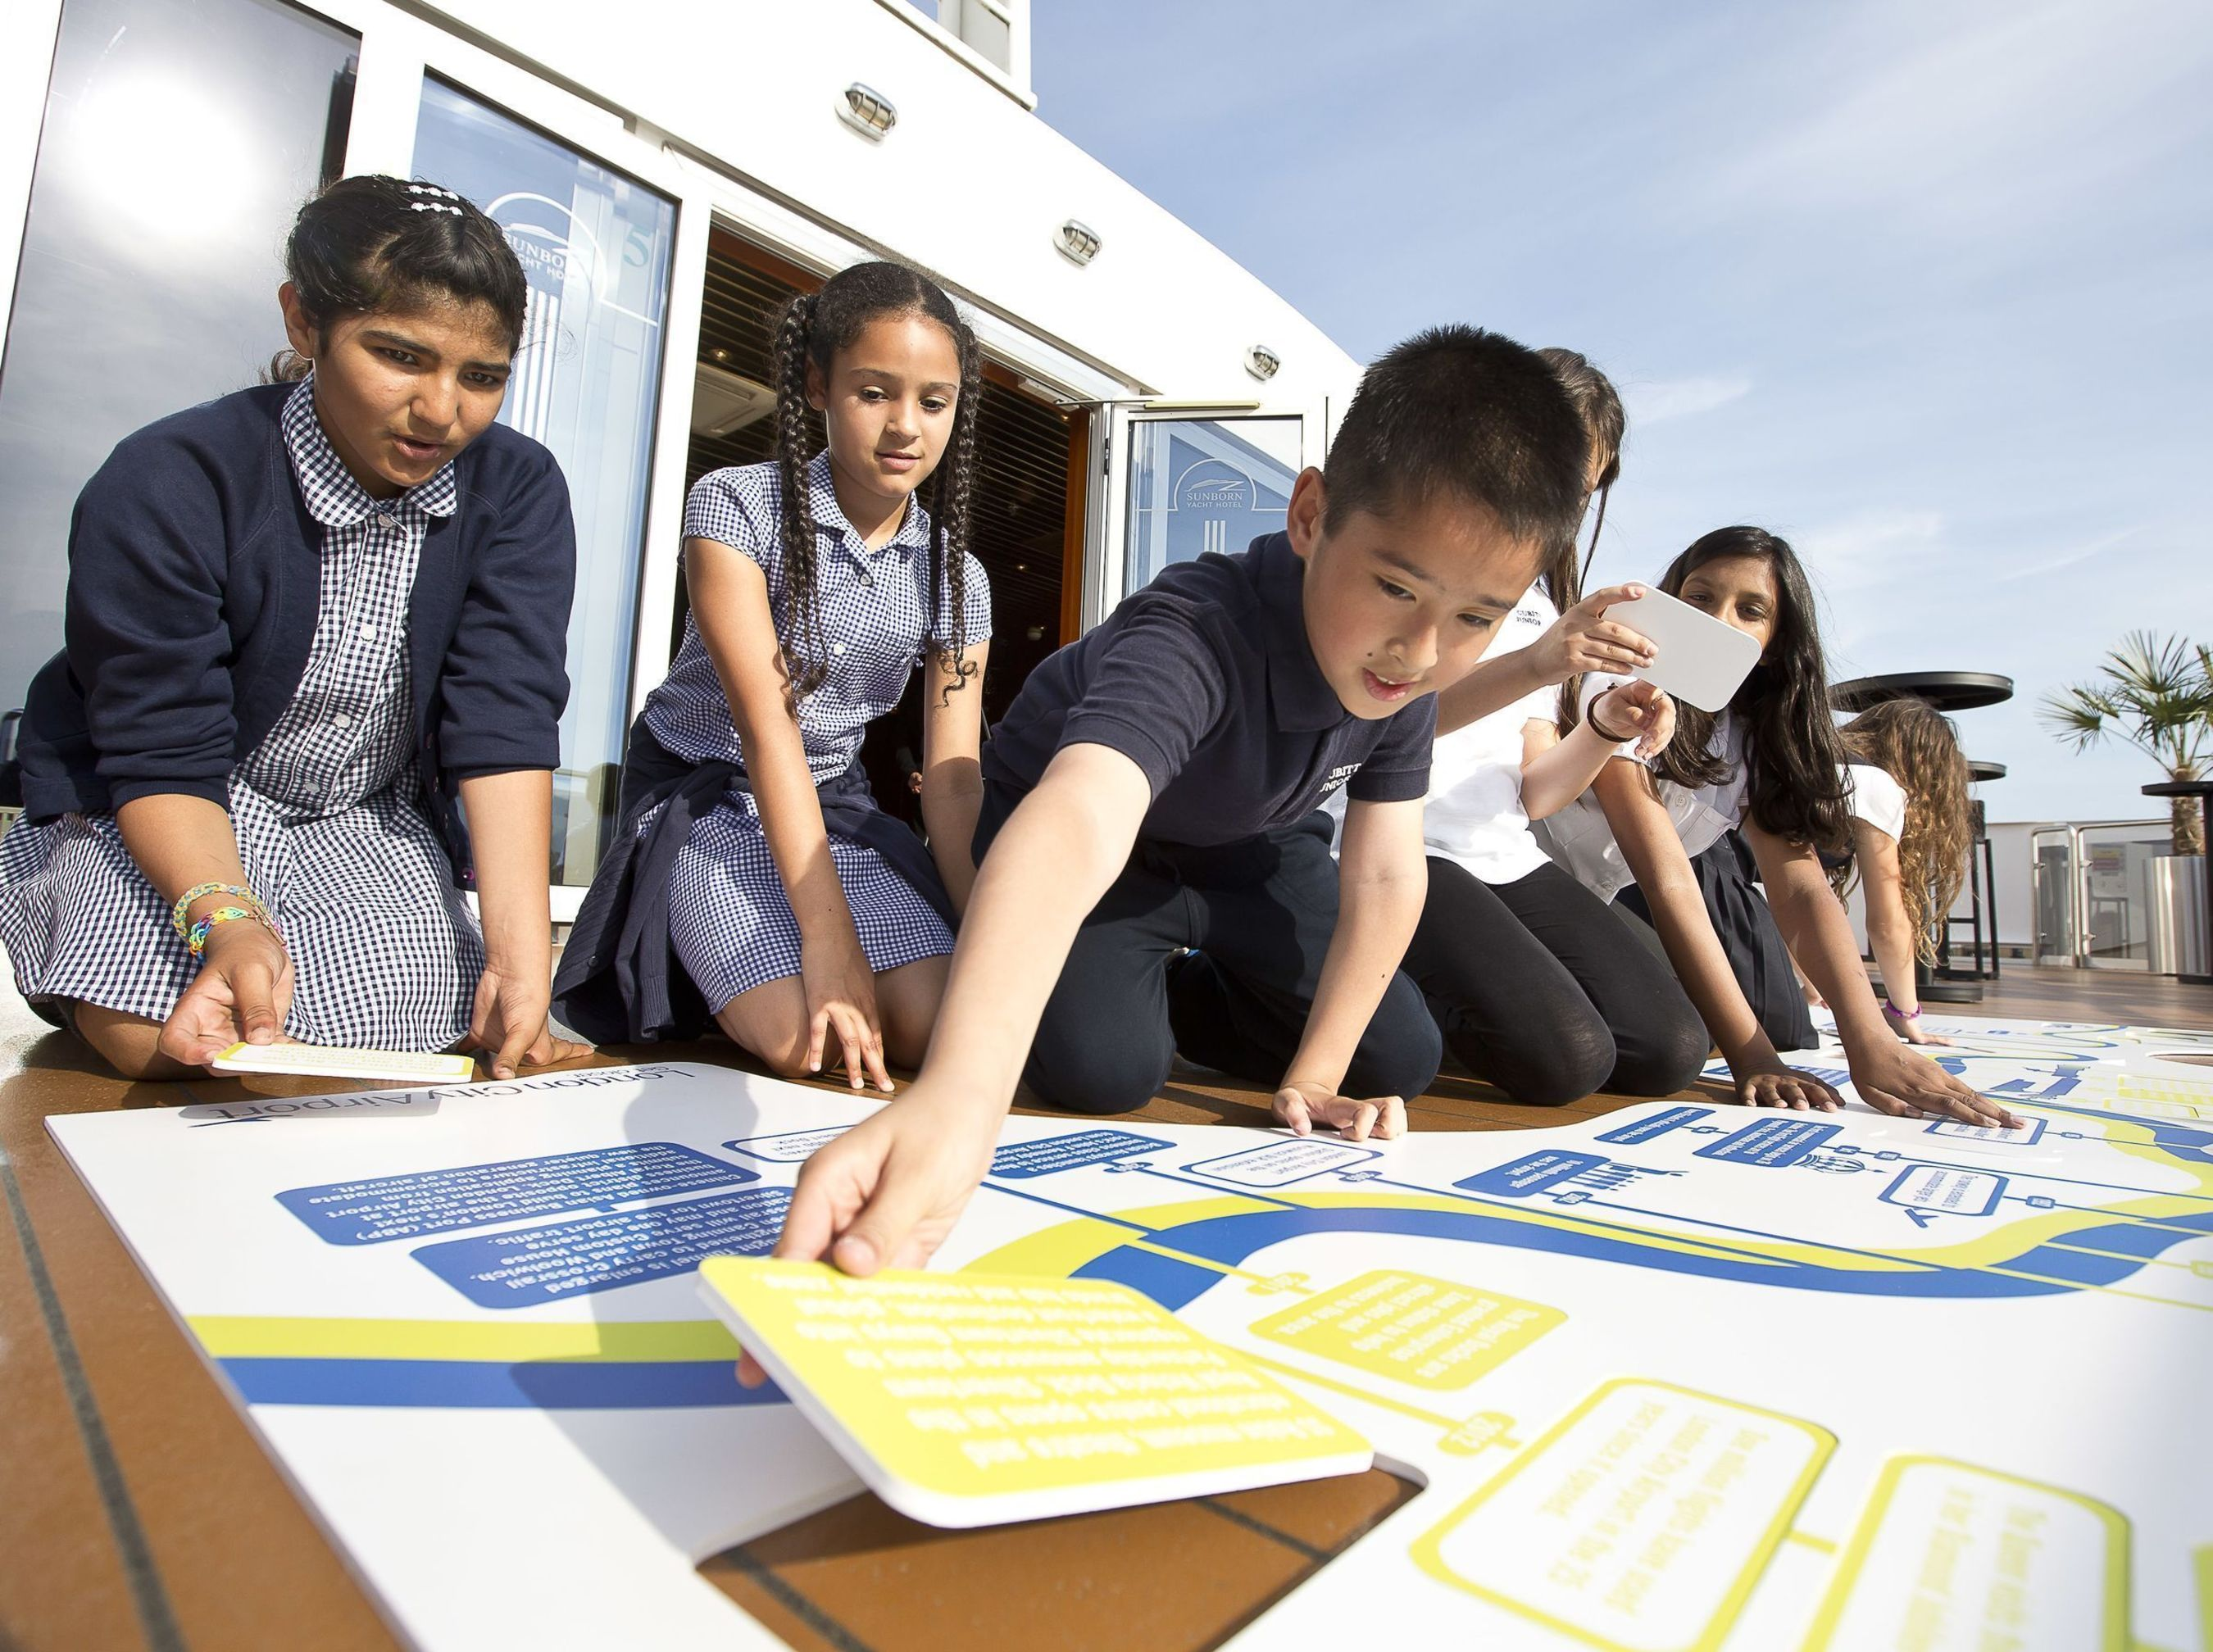 Children from Cubitt Town Junior School learn about the history of London's Royal Docks with a giant timeline puzzle. (PRNewsFoto/London City Airport)